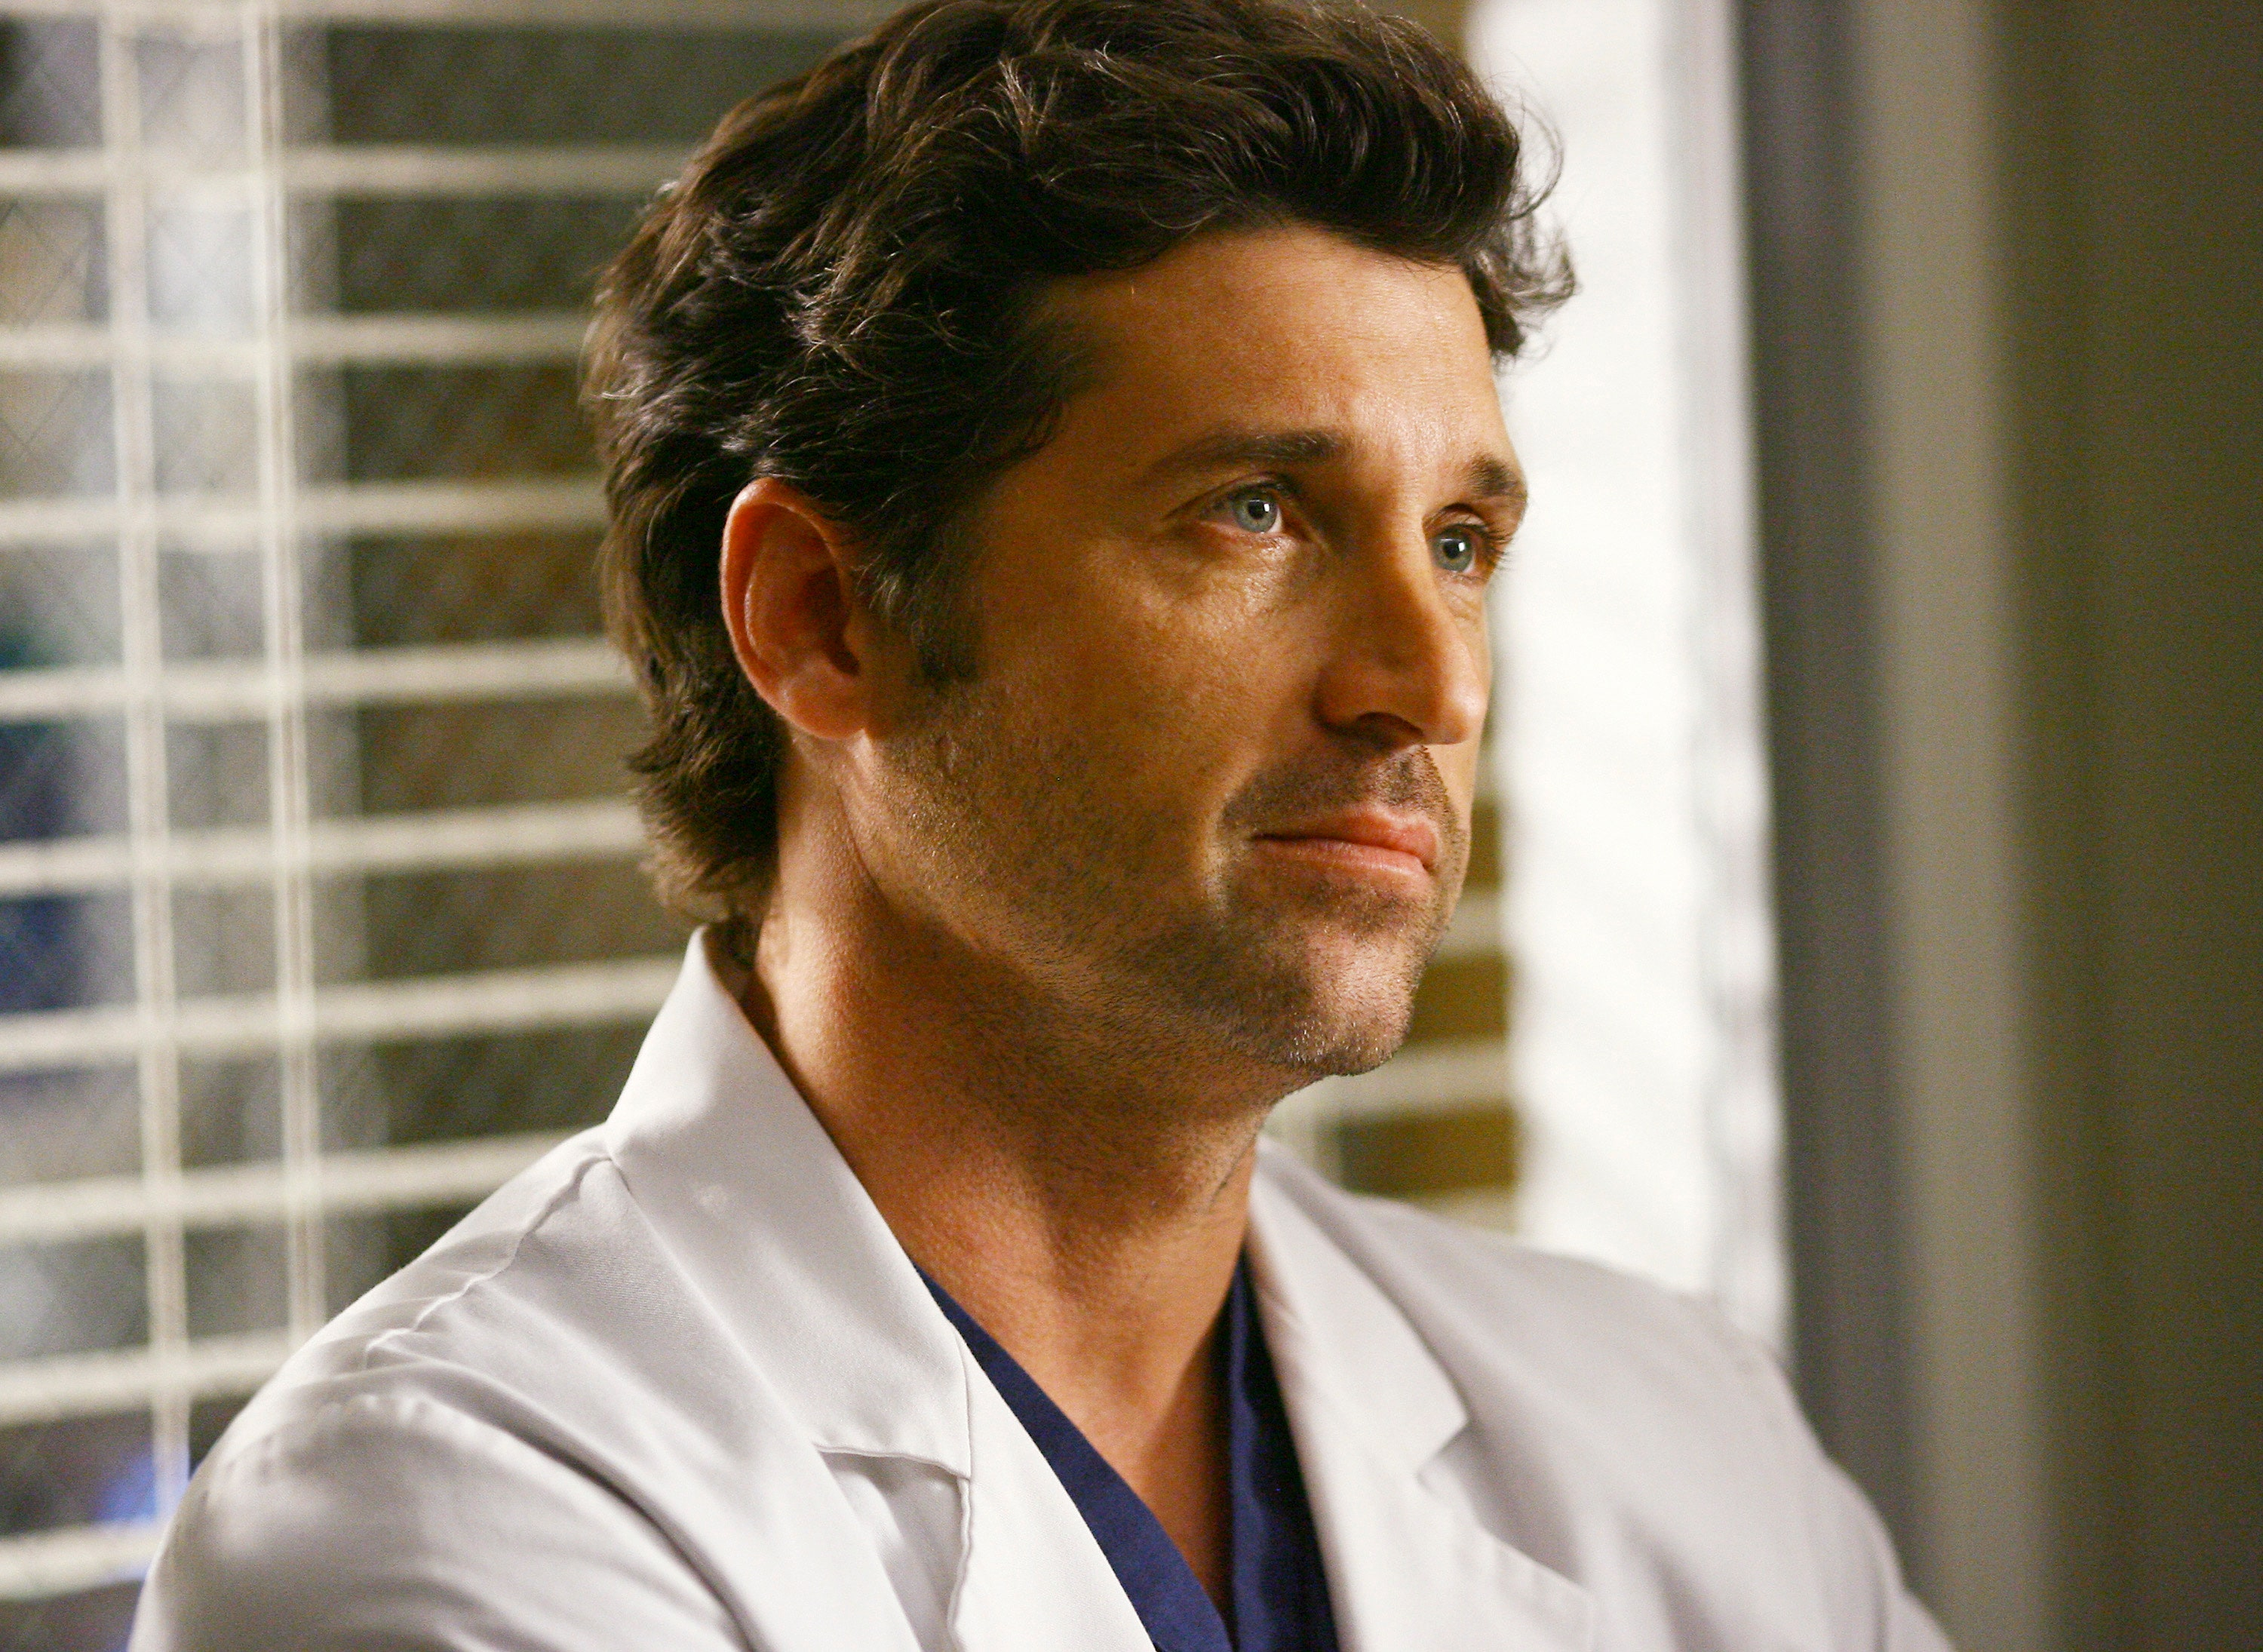 """Patrick Dempsey Reportedly Exited Grey's Anatomy After """"Terrorizing the Set"""""""